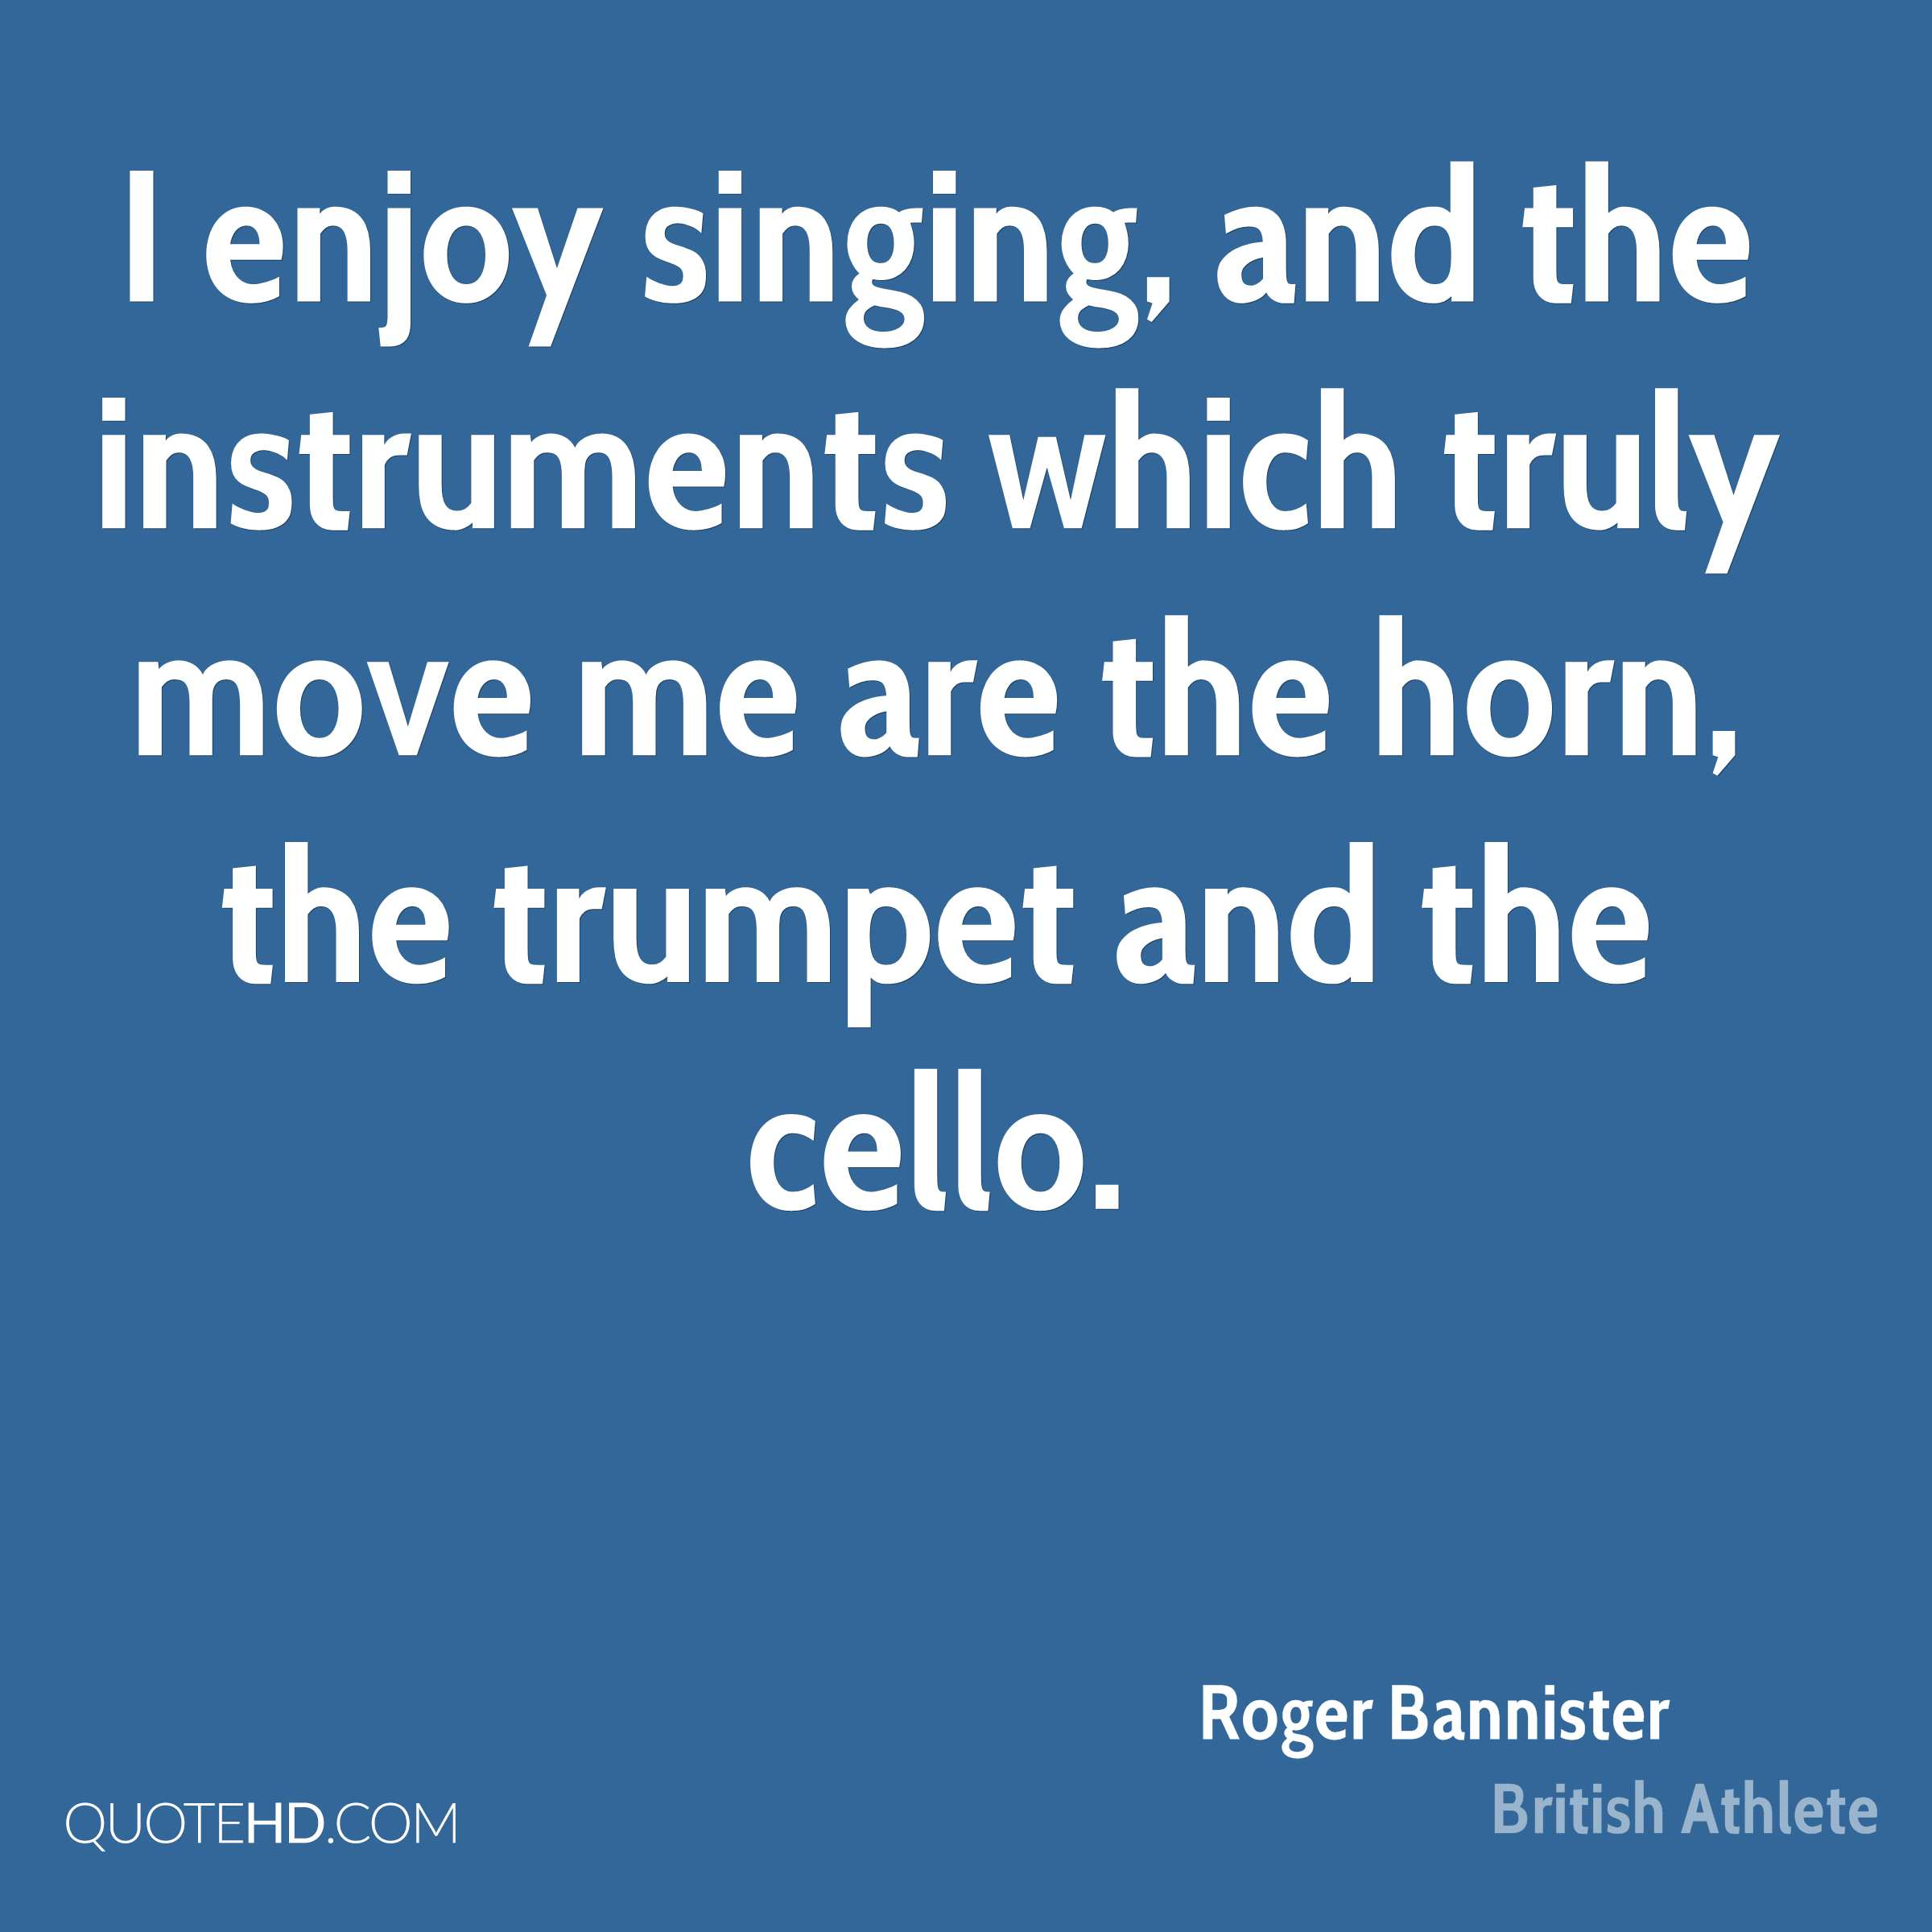 I enjoy singing, and the instruments which truly move me are the horn, the trumpet and the cello.